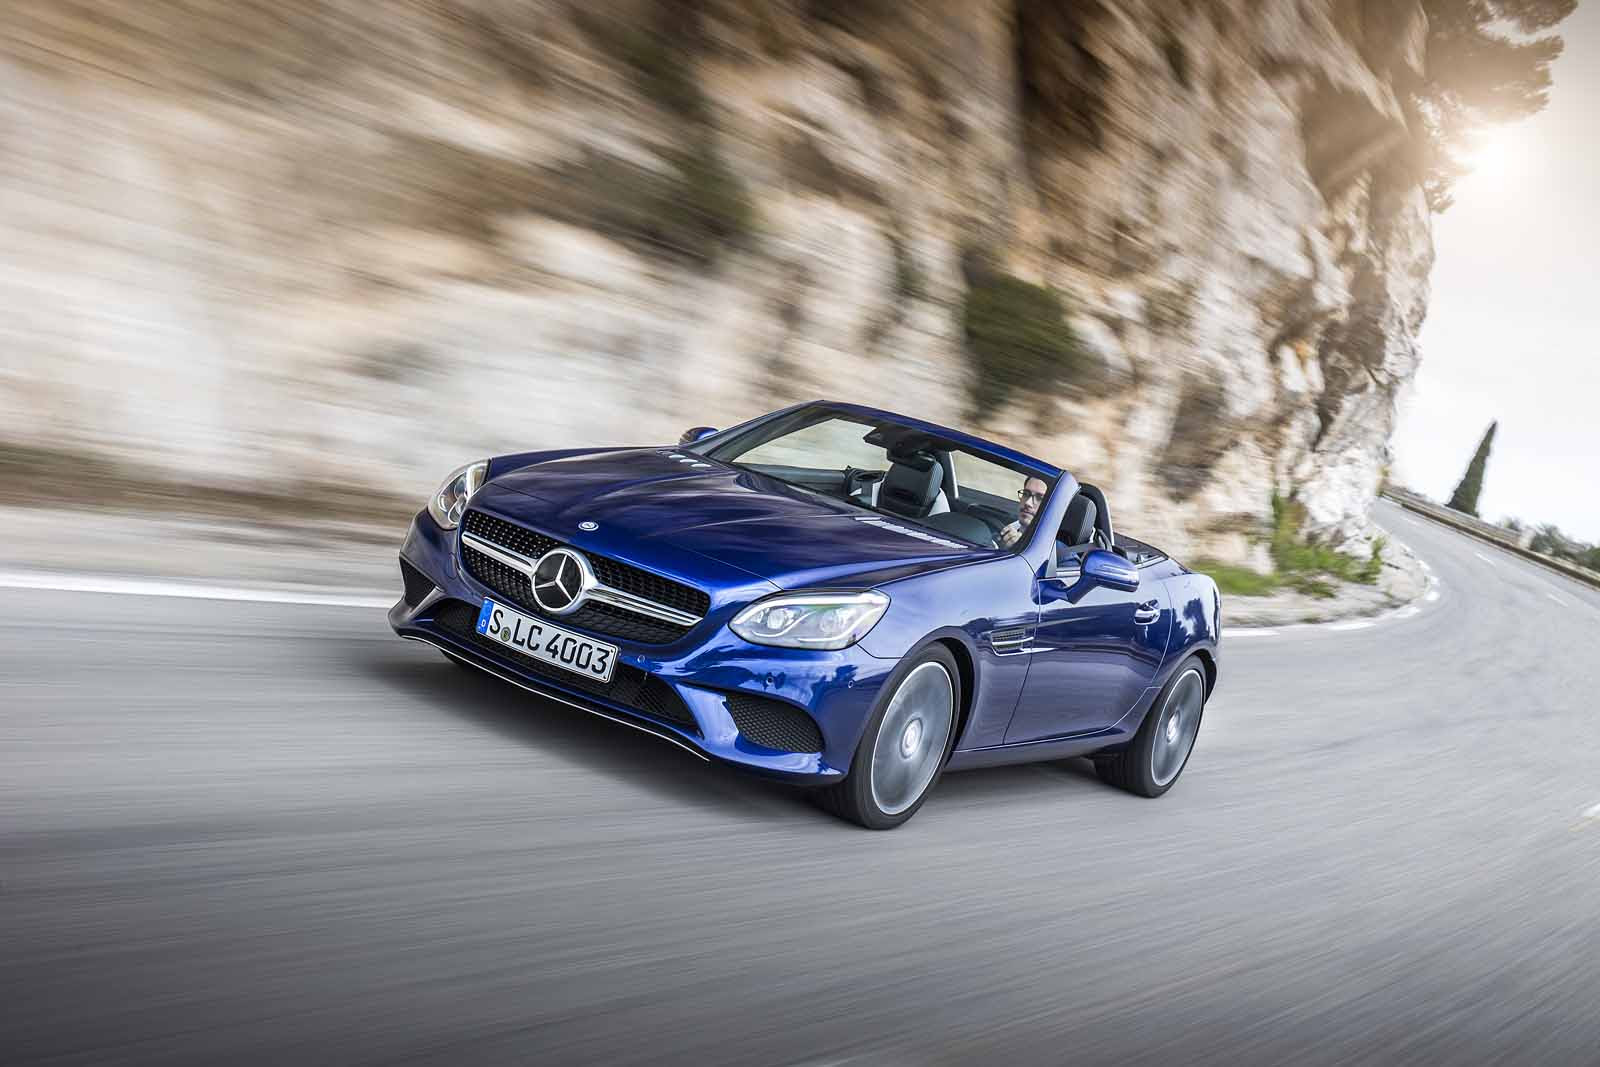 2017 Mercedes-Benz SLC 300 Roadster Review - AutoGuide.com ...